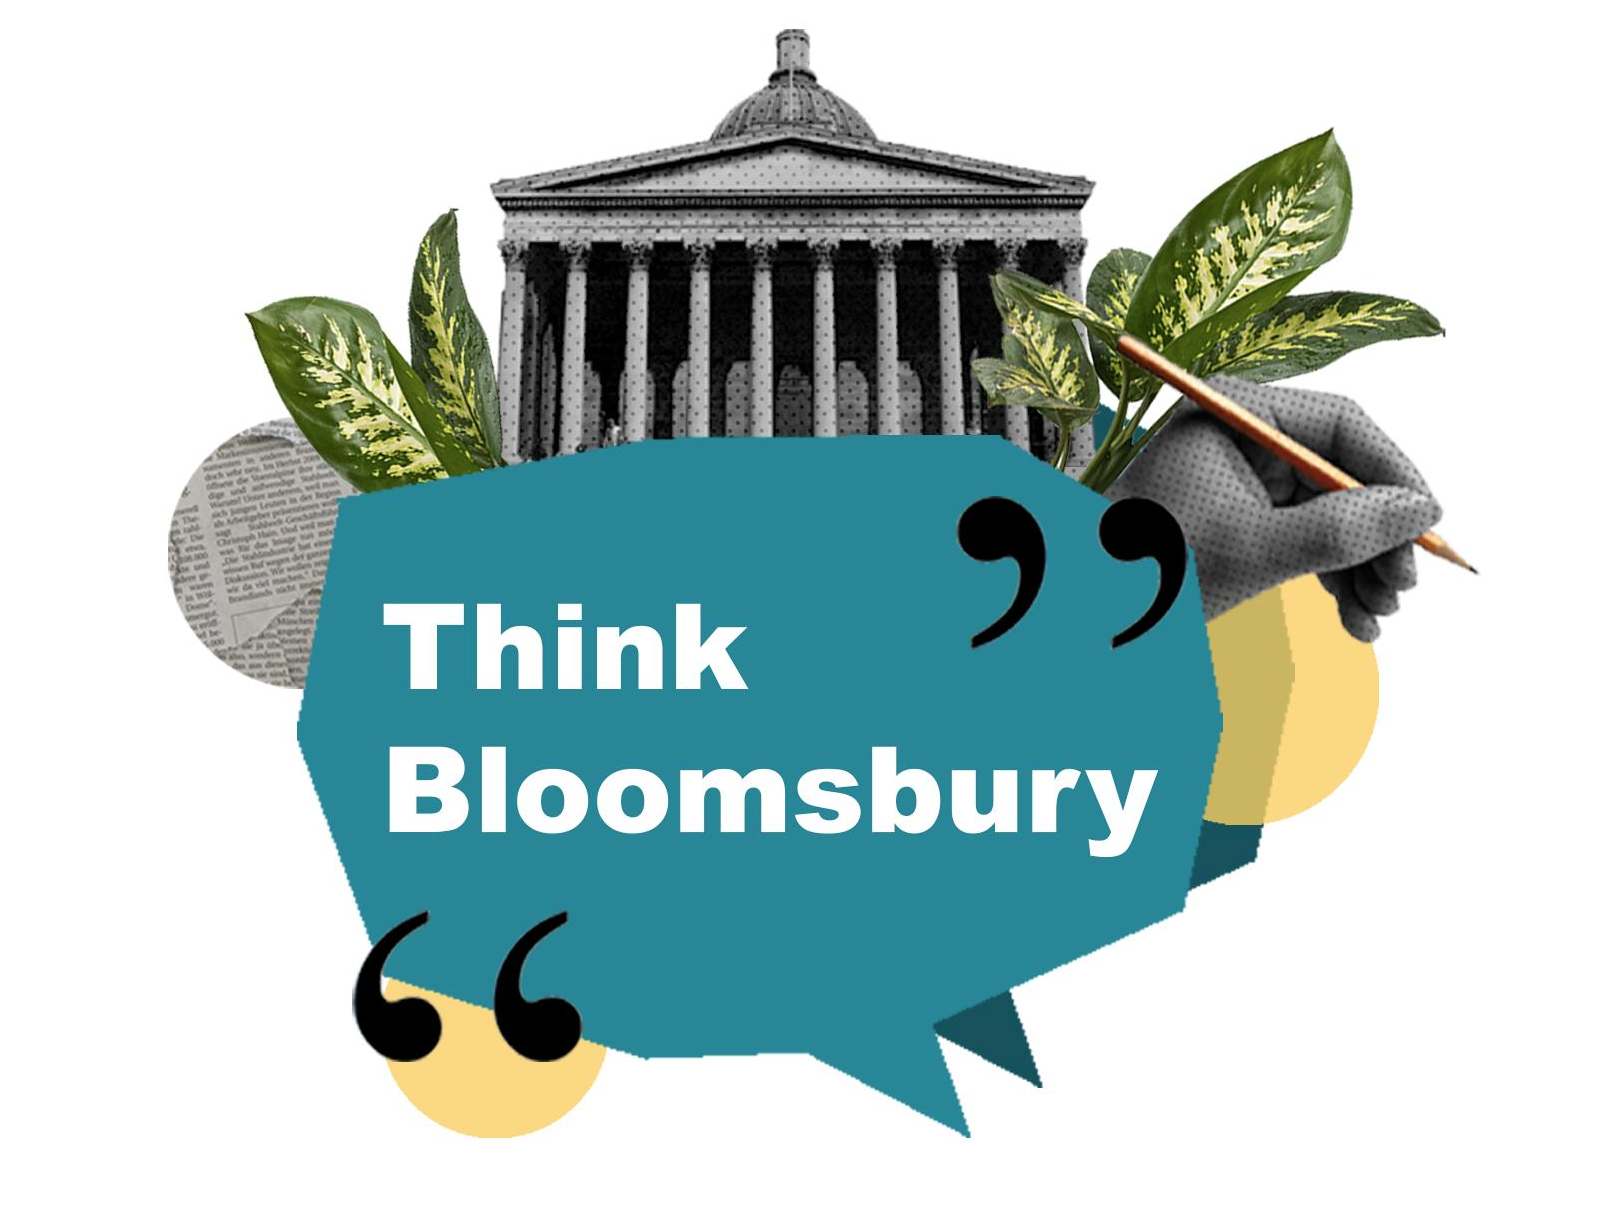 Think Bloomsbury